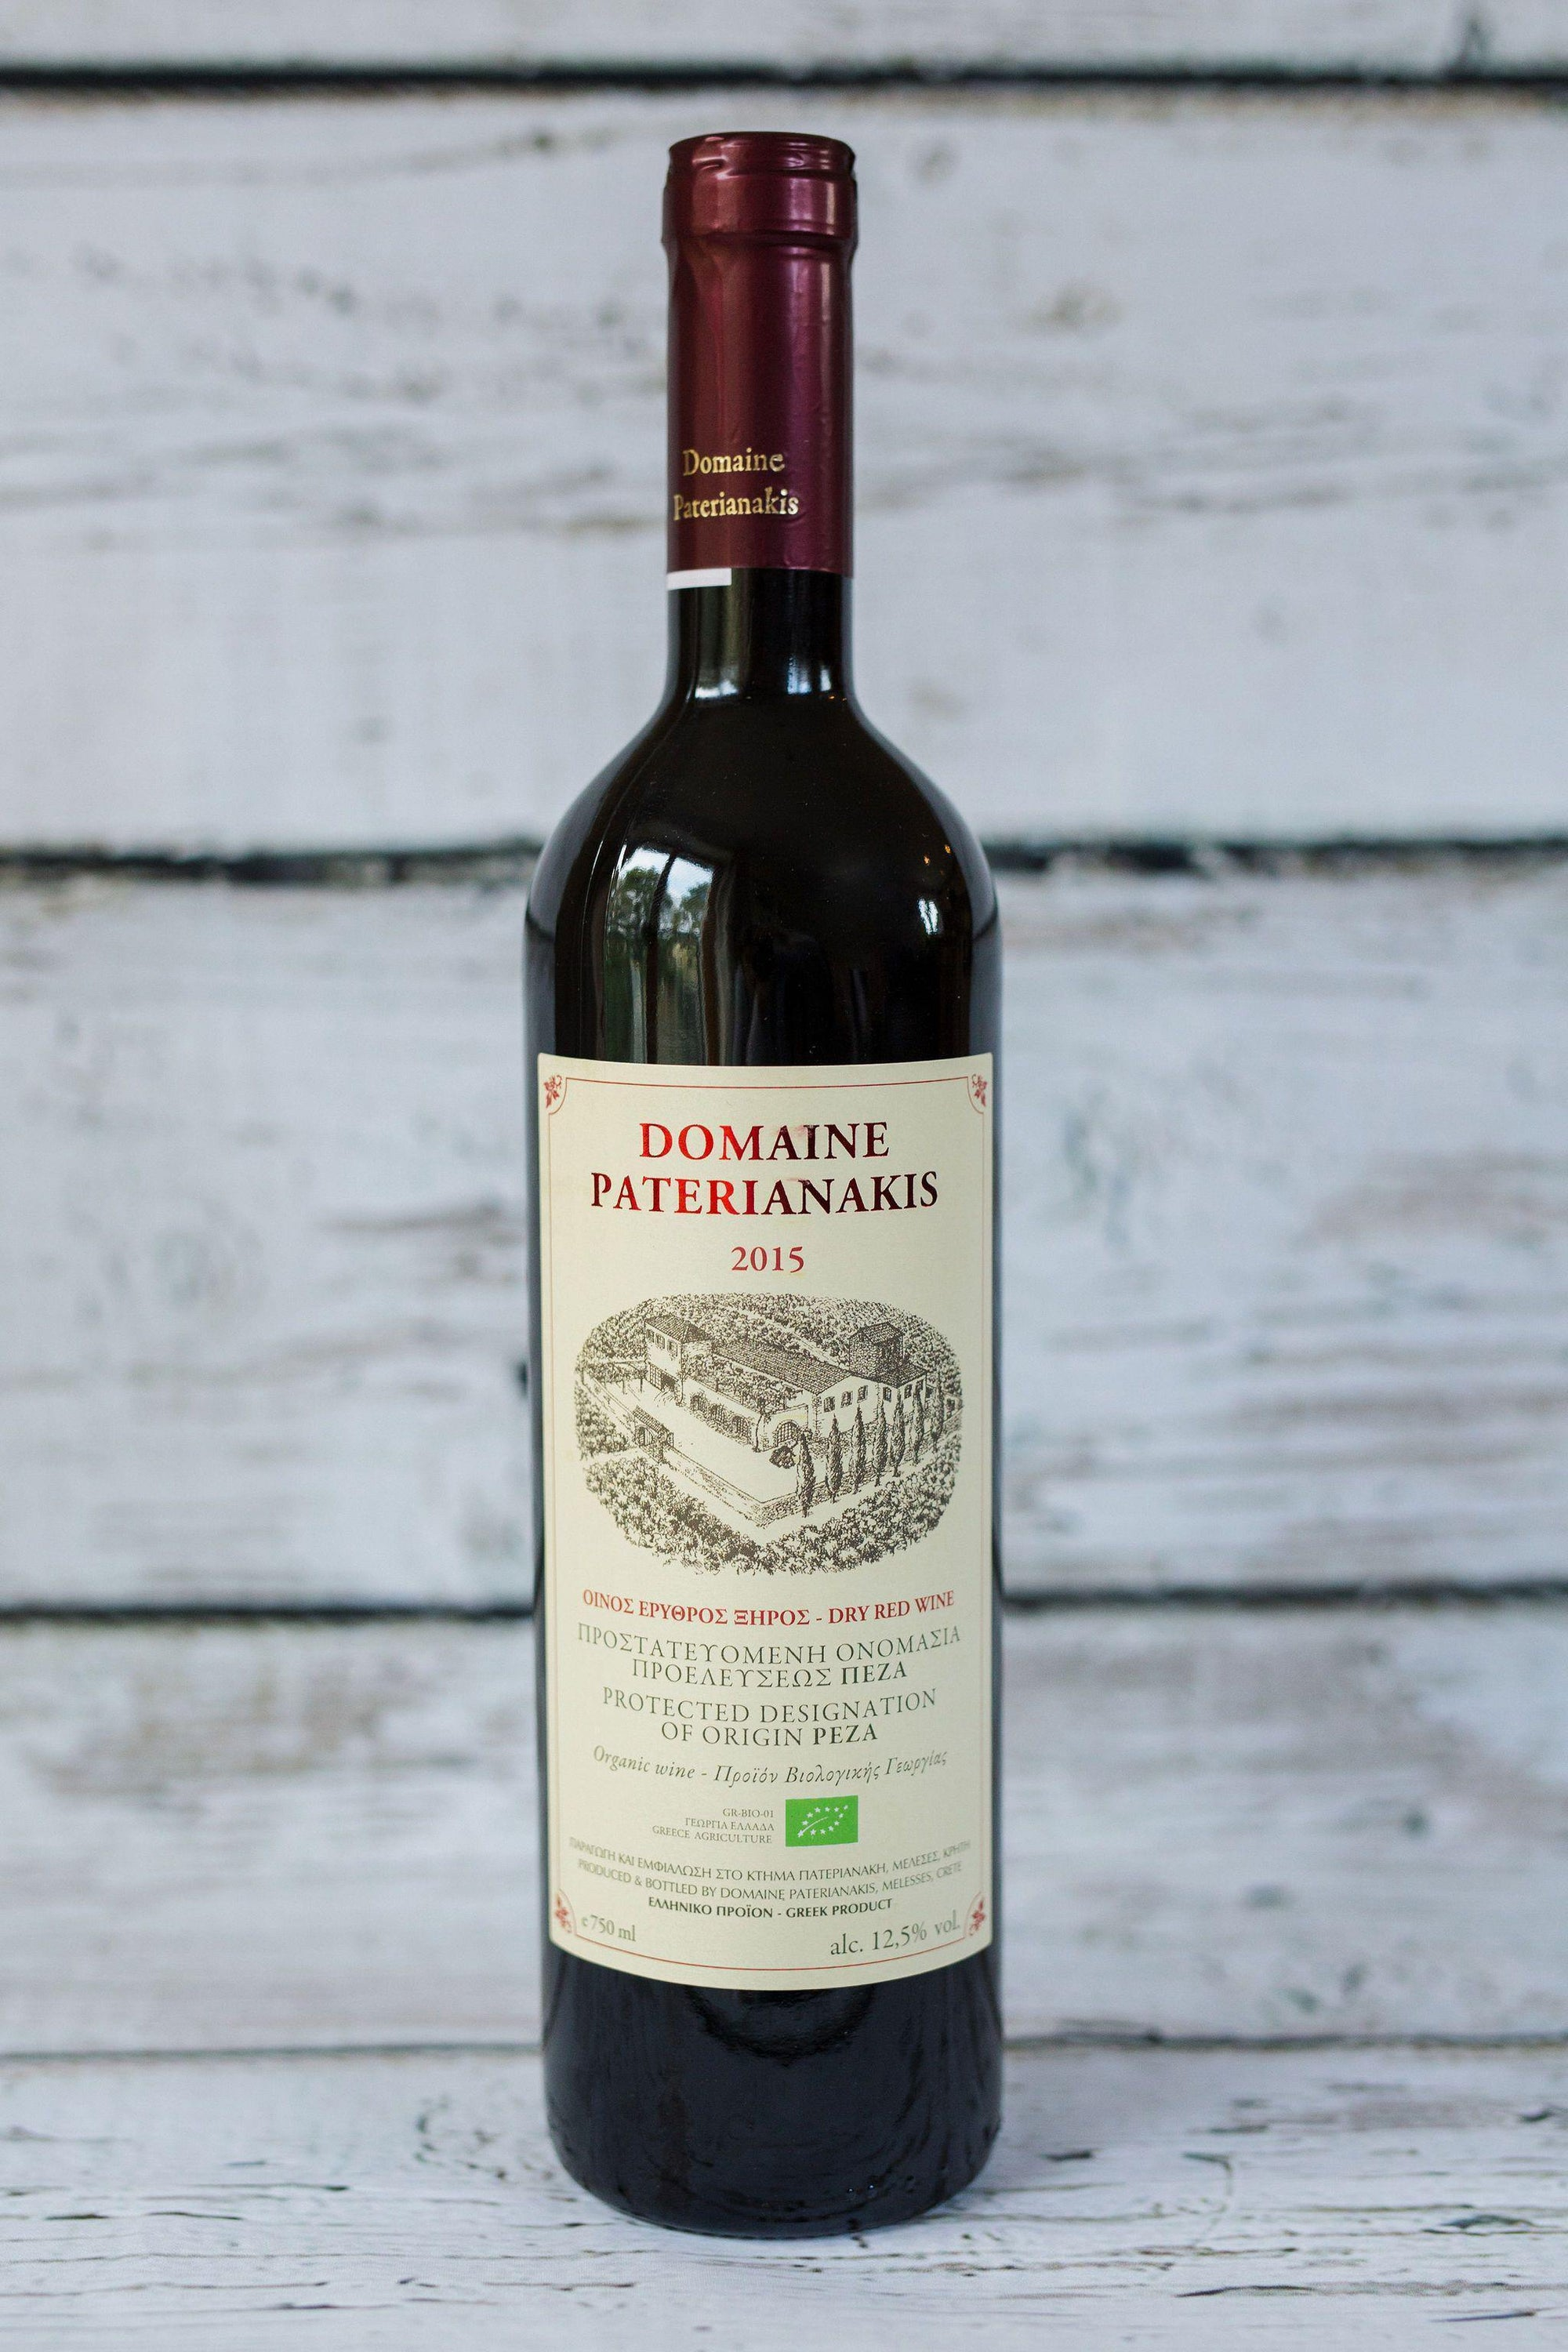 750ml brown wine bottle of red wine from Domain Paterianakis with front label, cork with foil cap